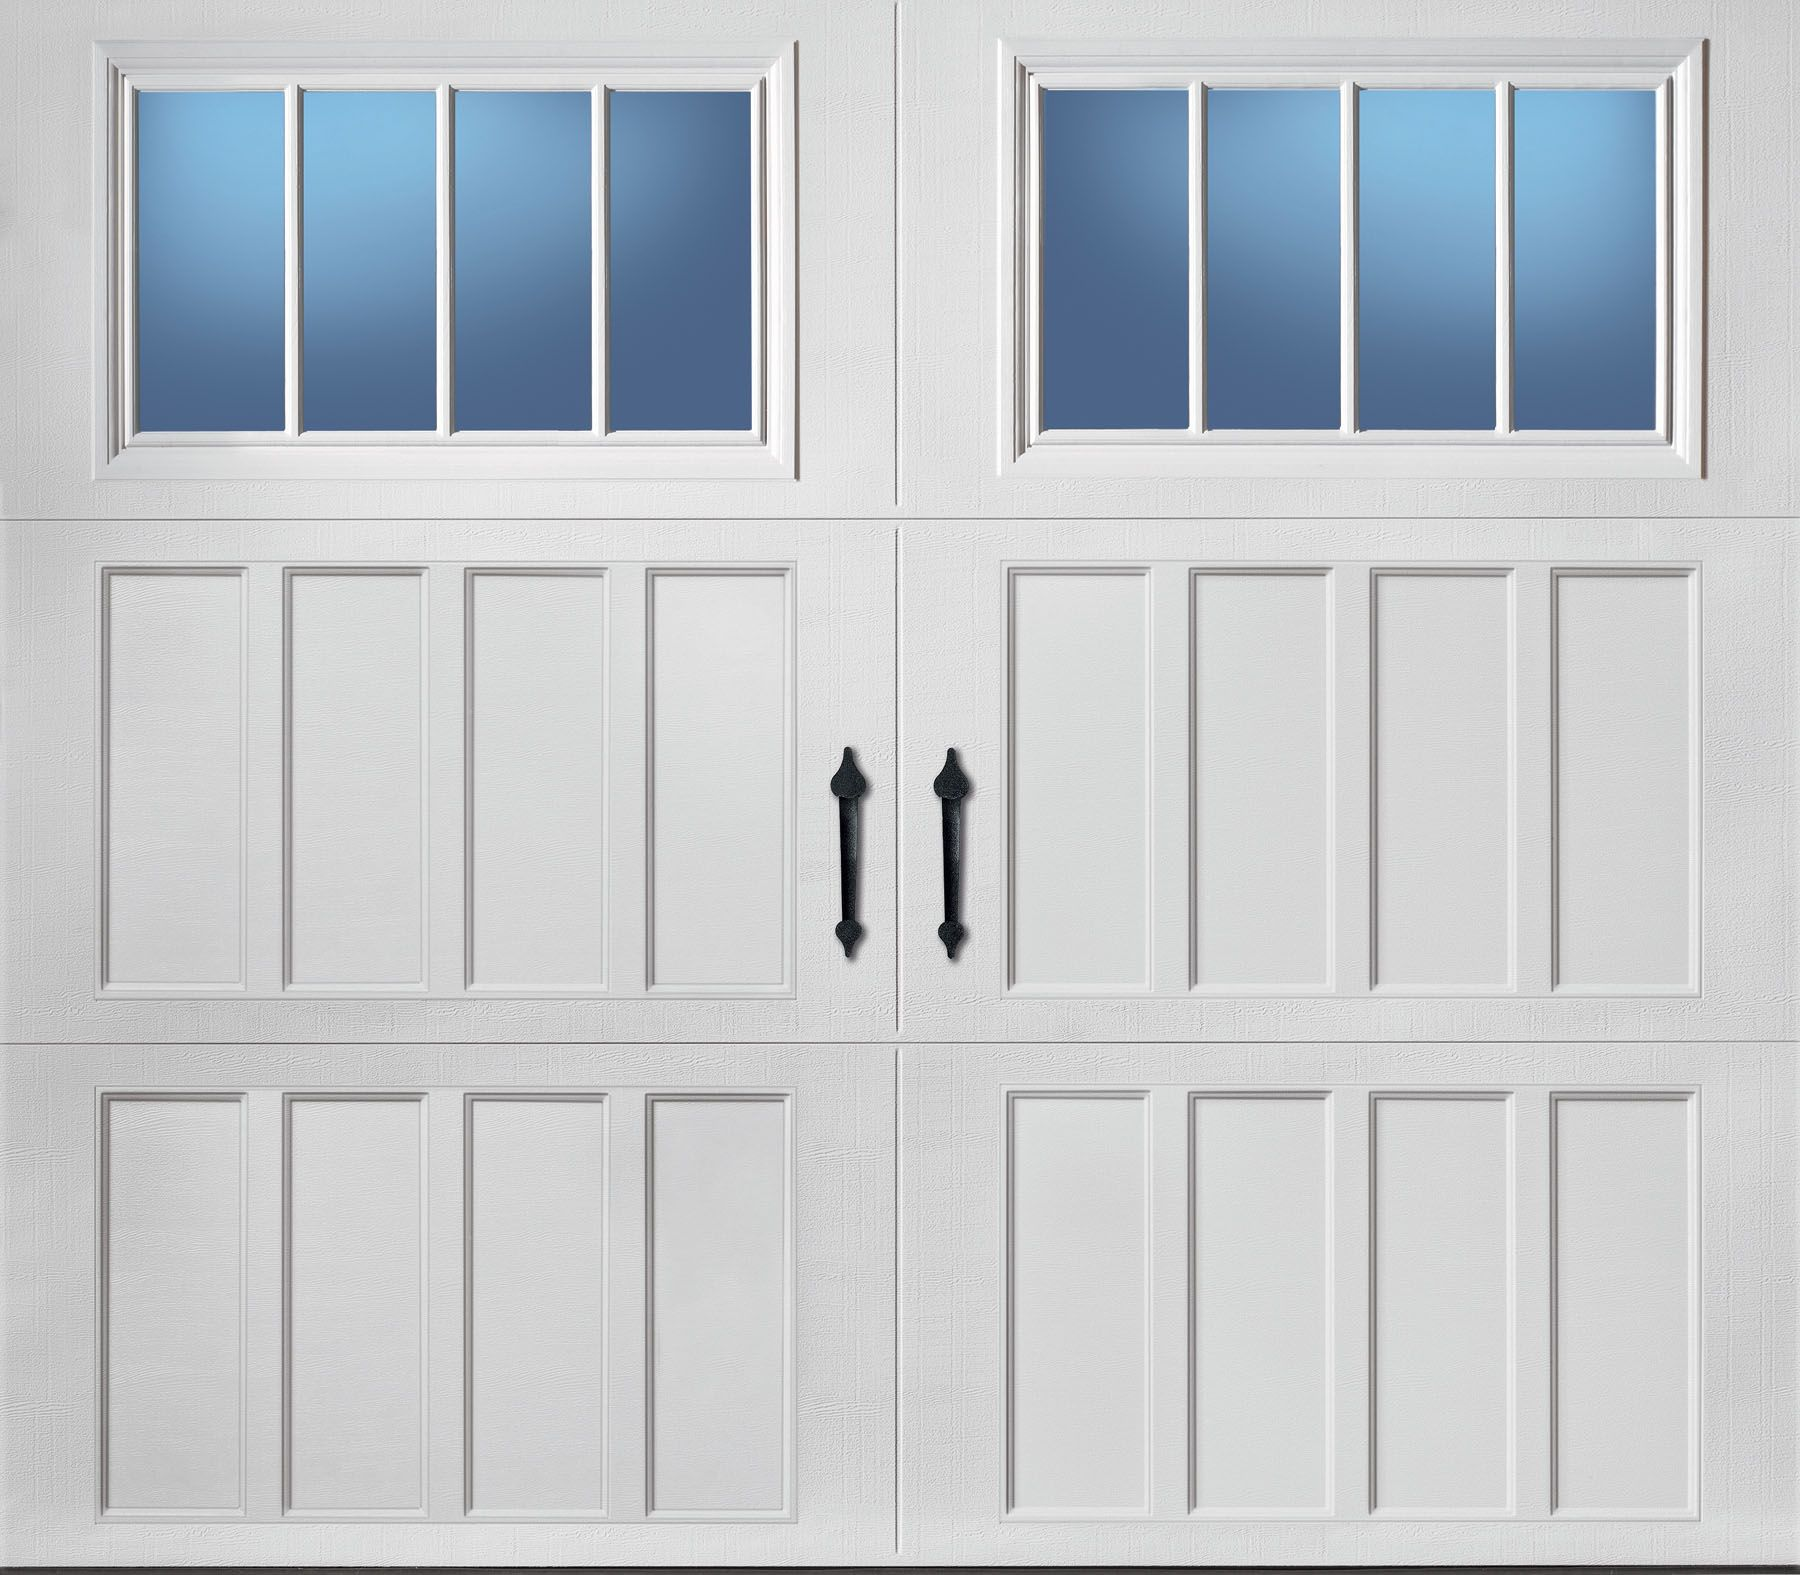 Classica northampton garage door white 9 x 8 no windows - Garage Door Amarr Door Summary Door Design Northampton Windows Thames Color True